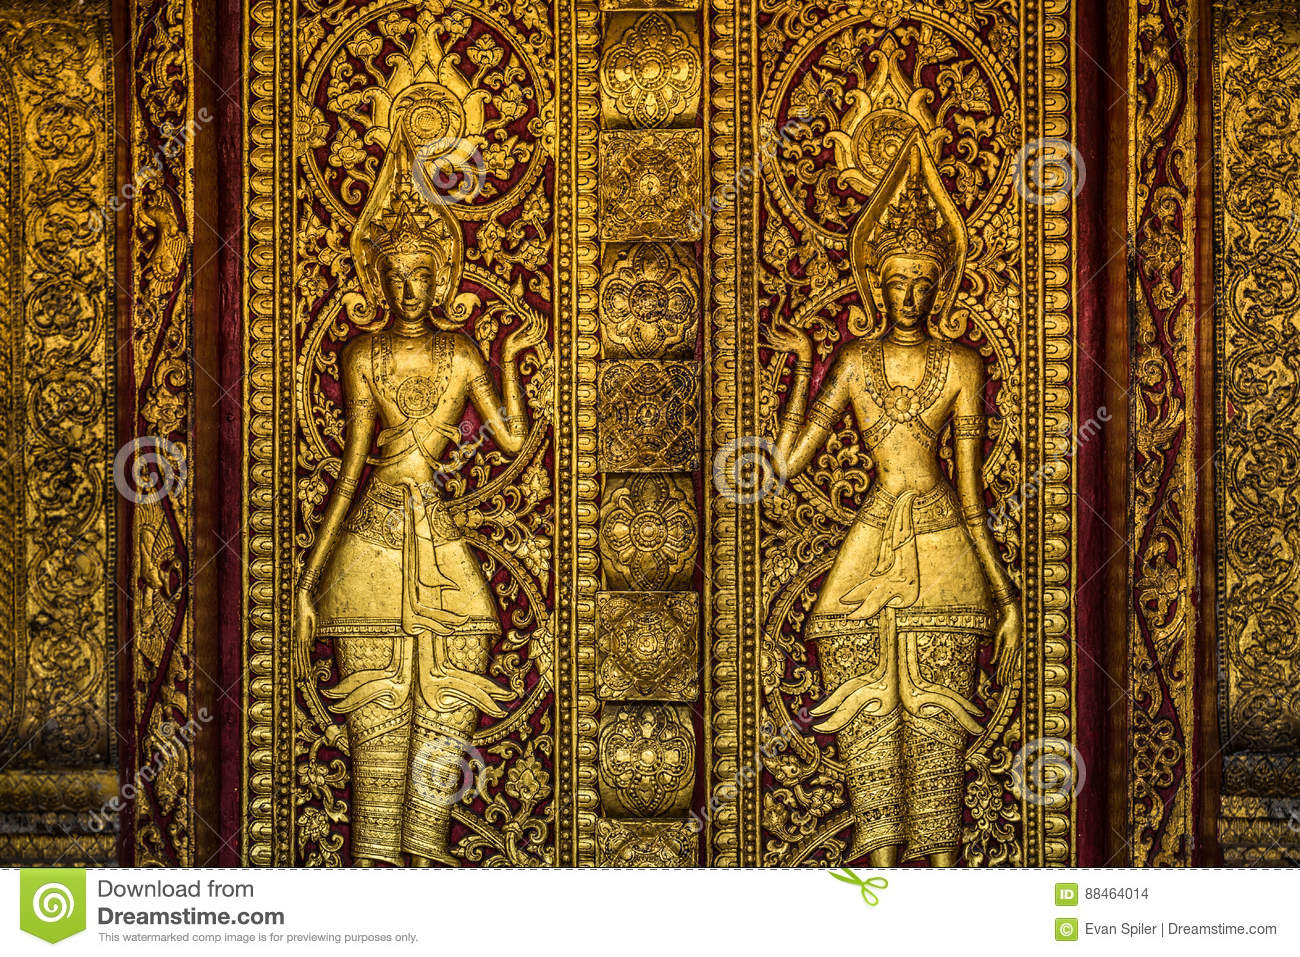 Golden Buddhist door sculpture & Golden Buddhist Door Sculpture Stock Photo - Image of sculpture ...